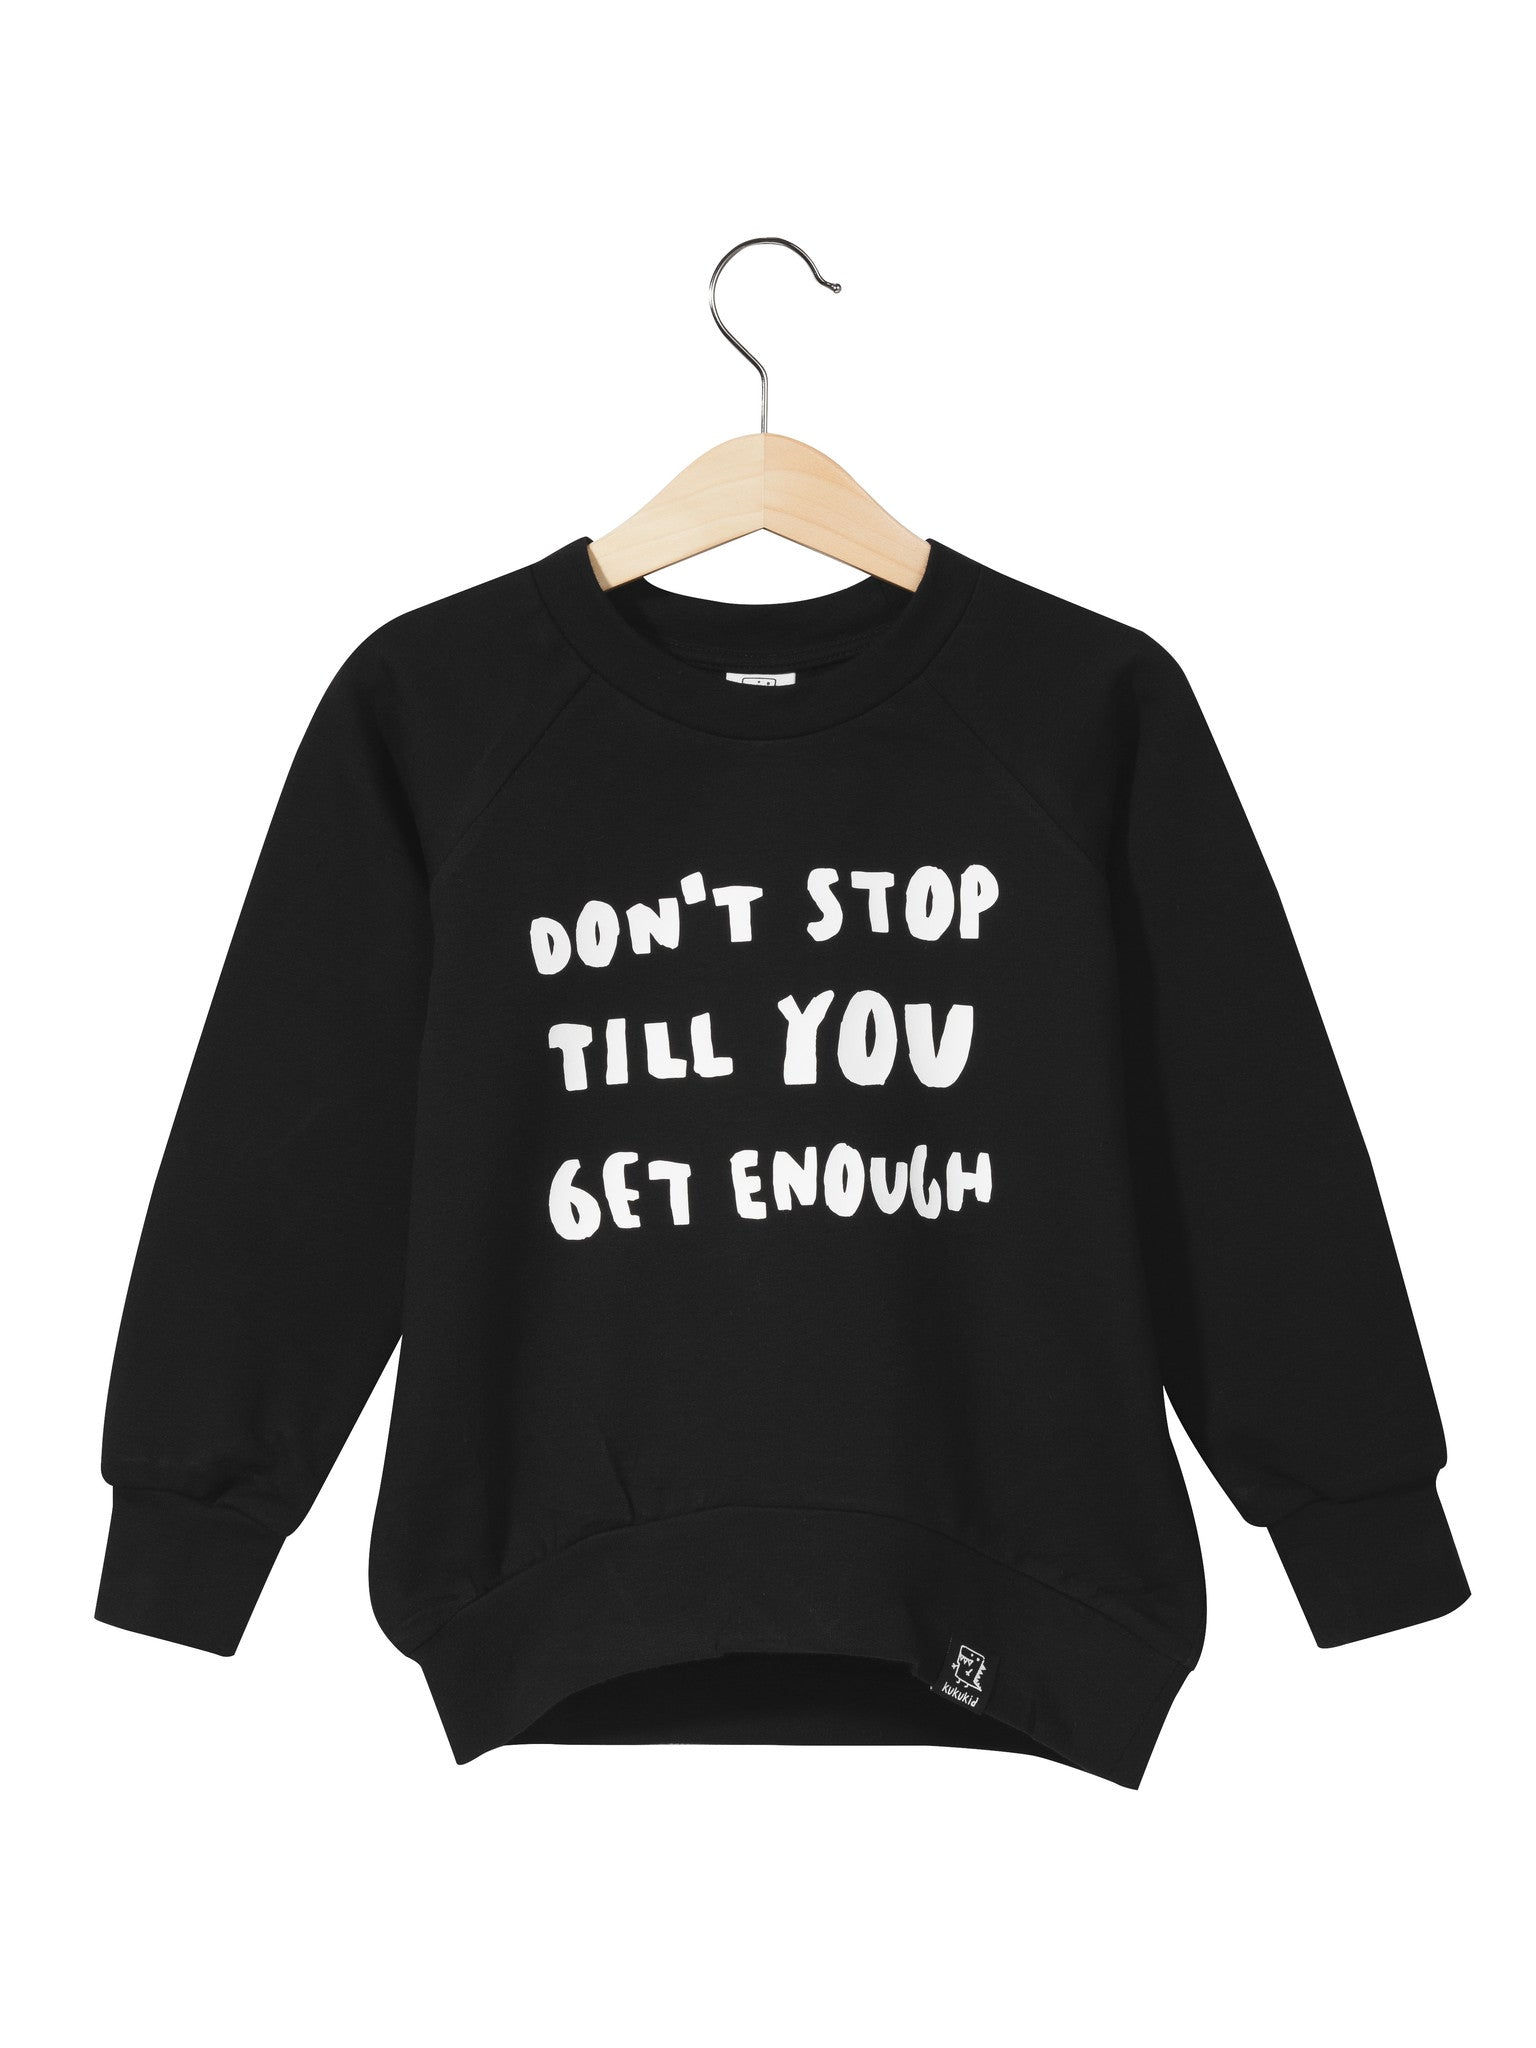 KUKUKID - Sweatshirt Don't Stop Till You Get Enough / Black (LAST ONE 1-2Y)